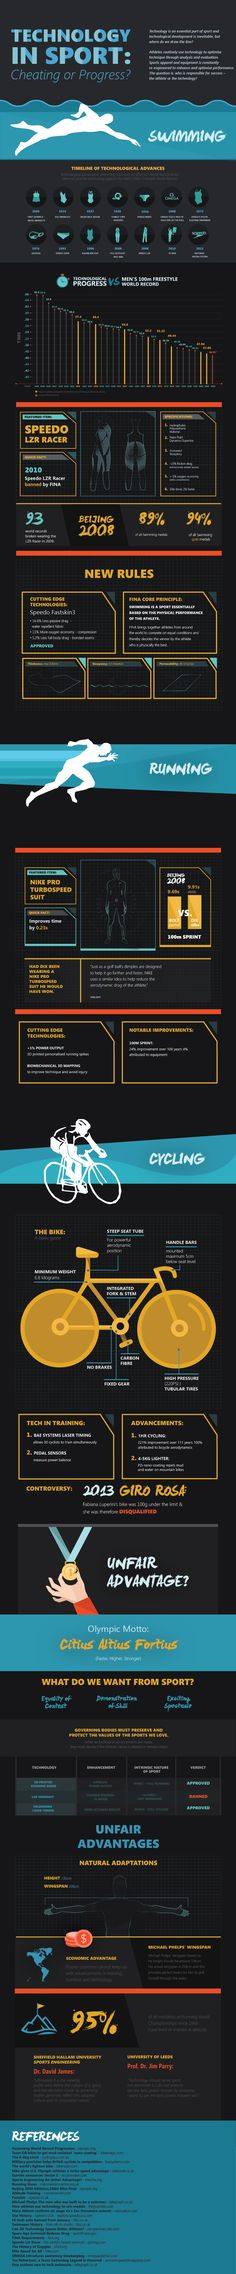 Technology in Sport - Cheating or Progress? Great Infographic.